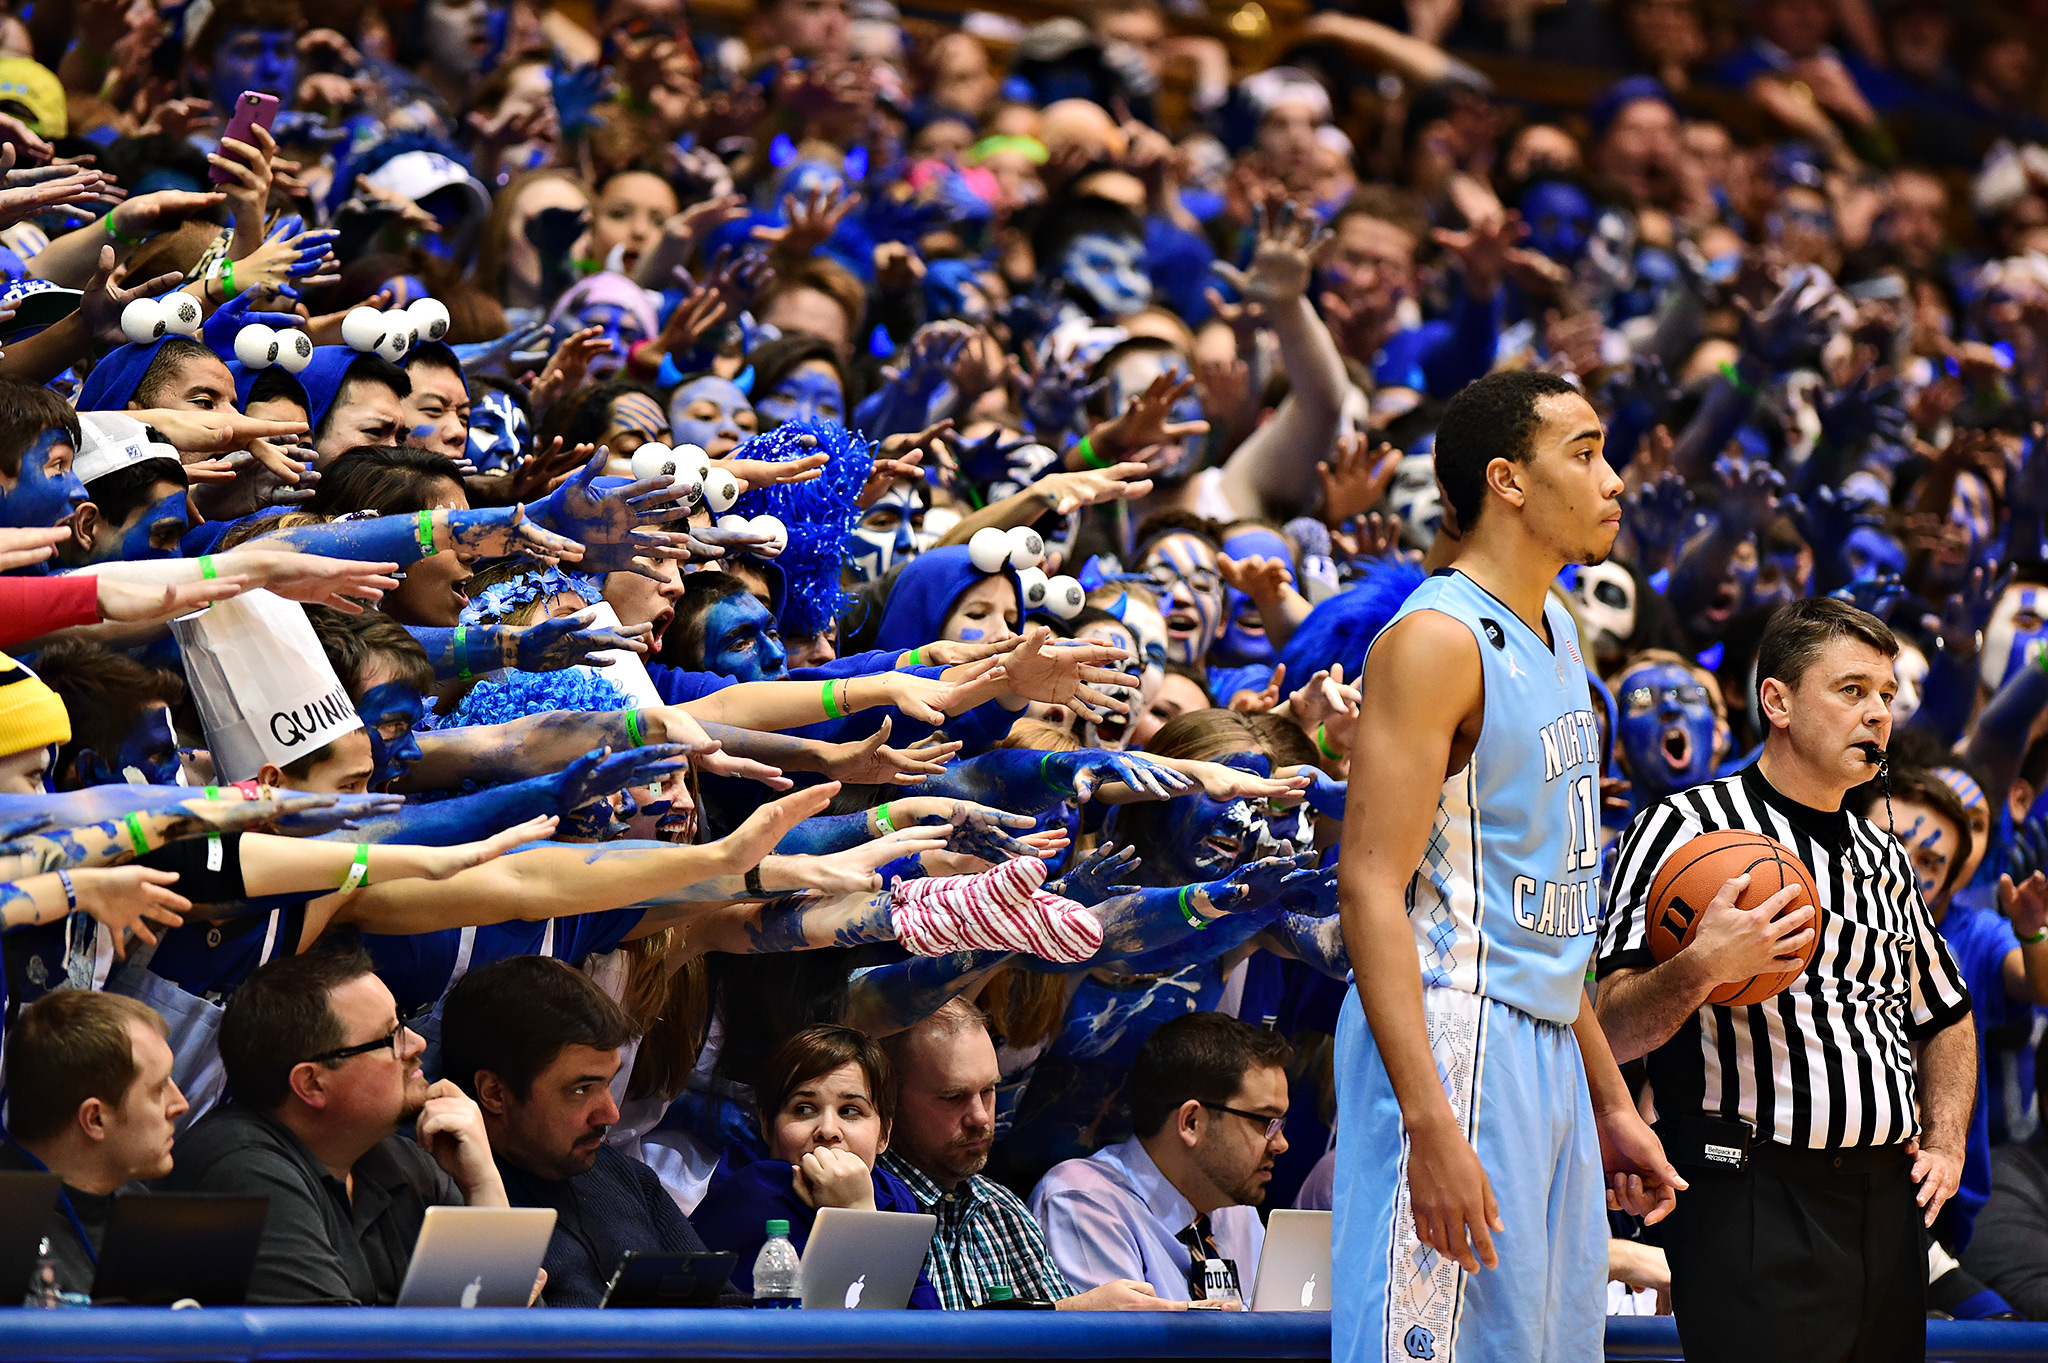 Cameron Crazies - Friday Funnies: College Basketball Fans ...